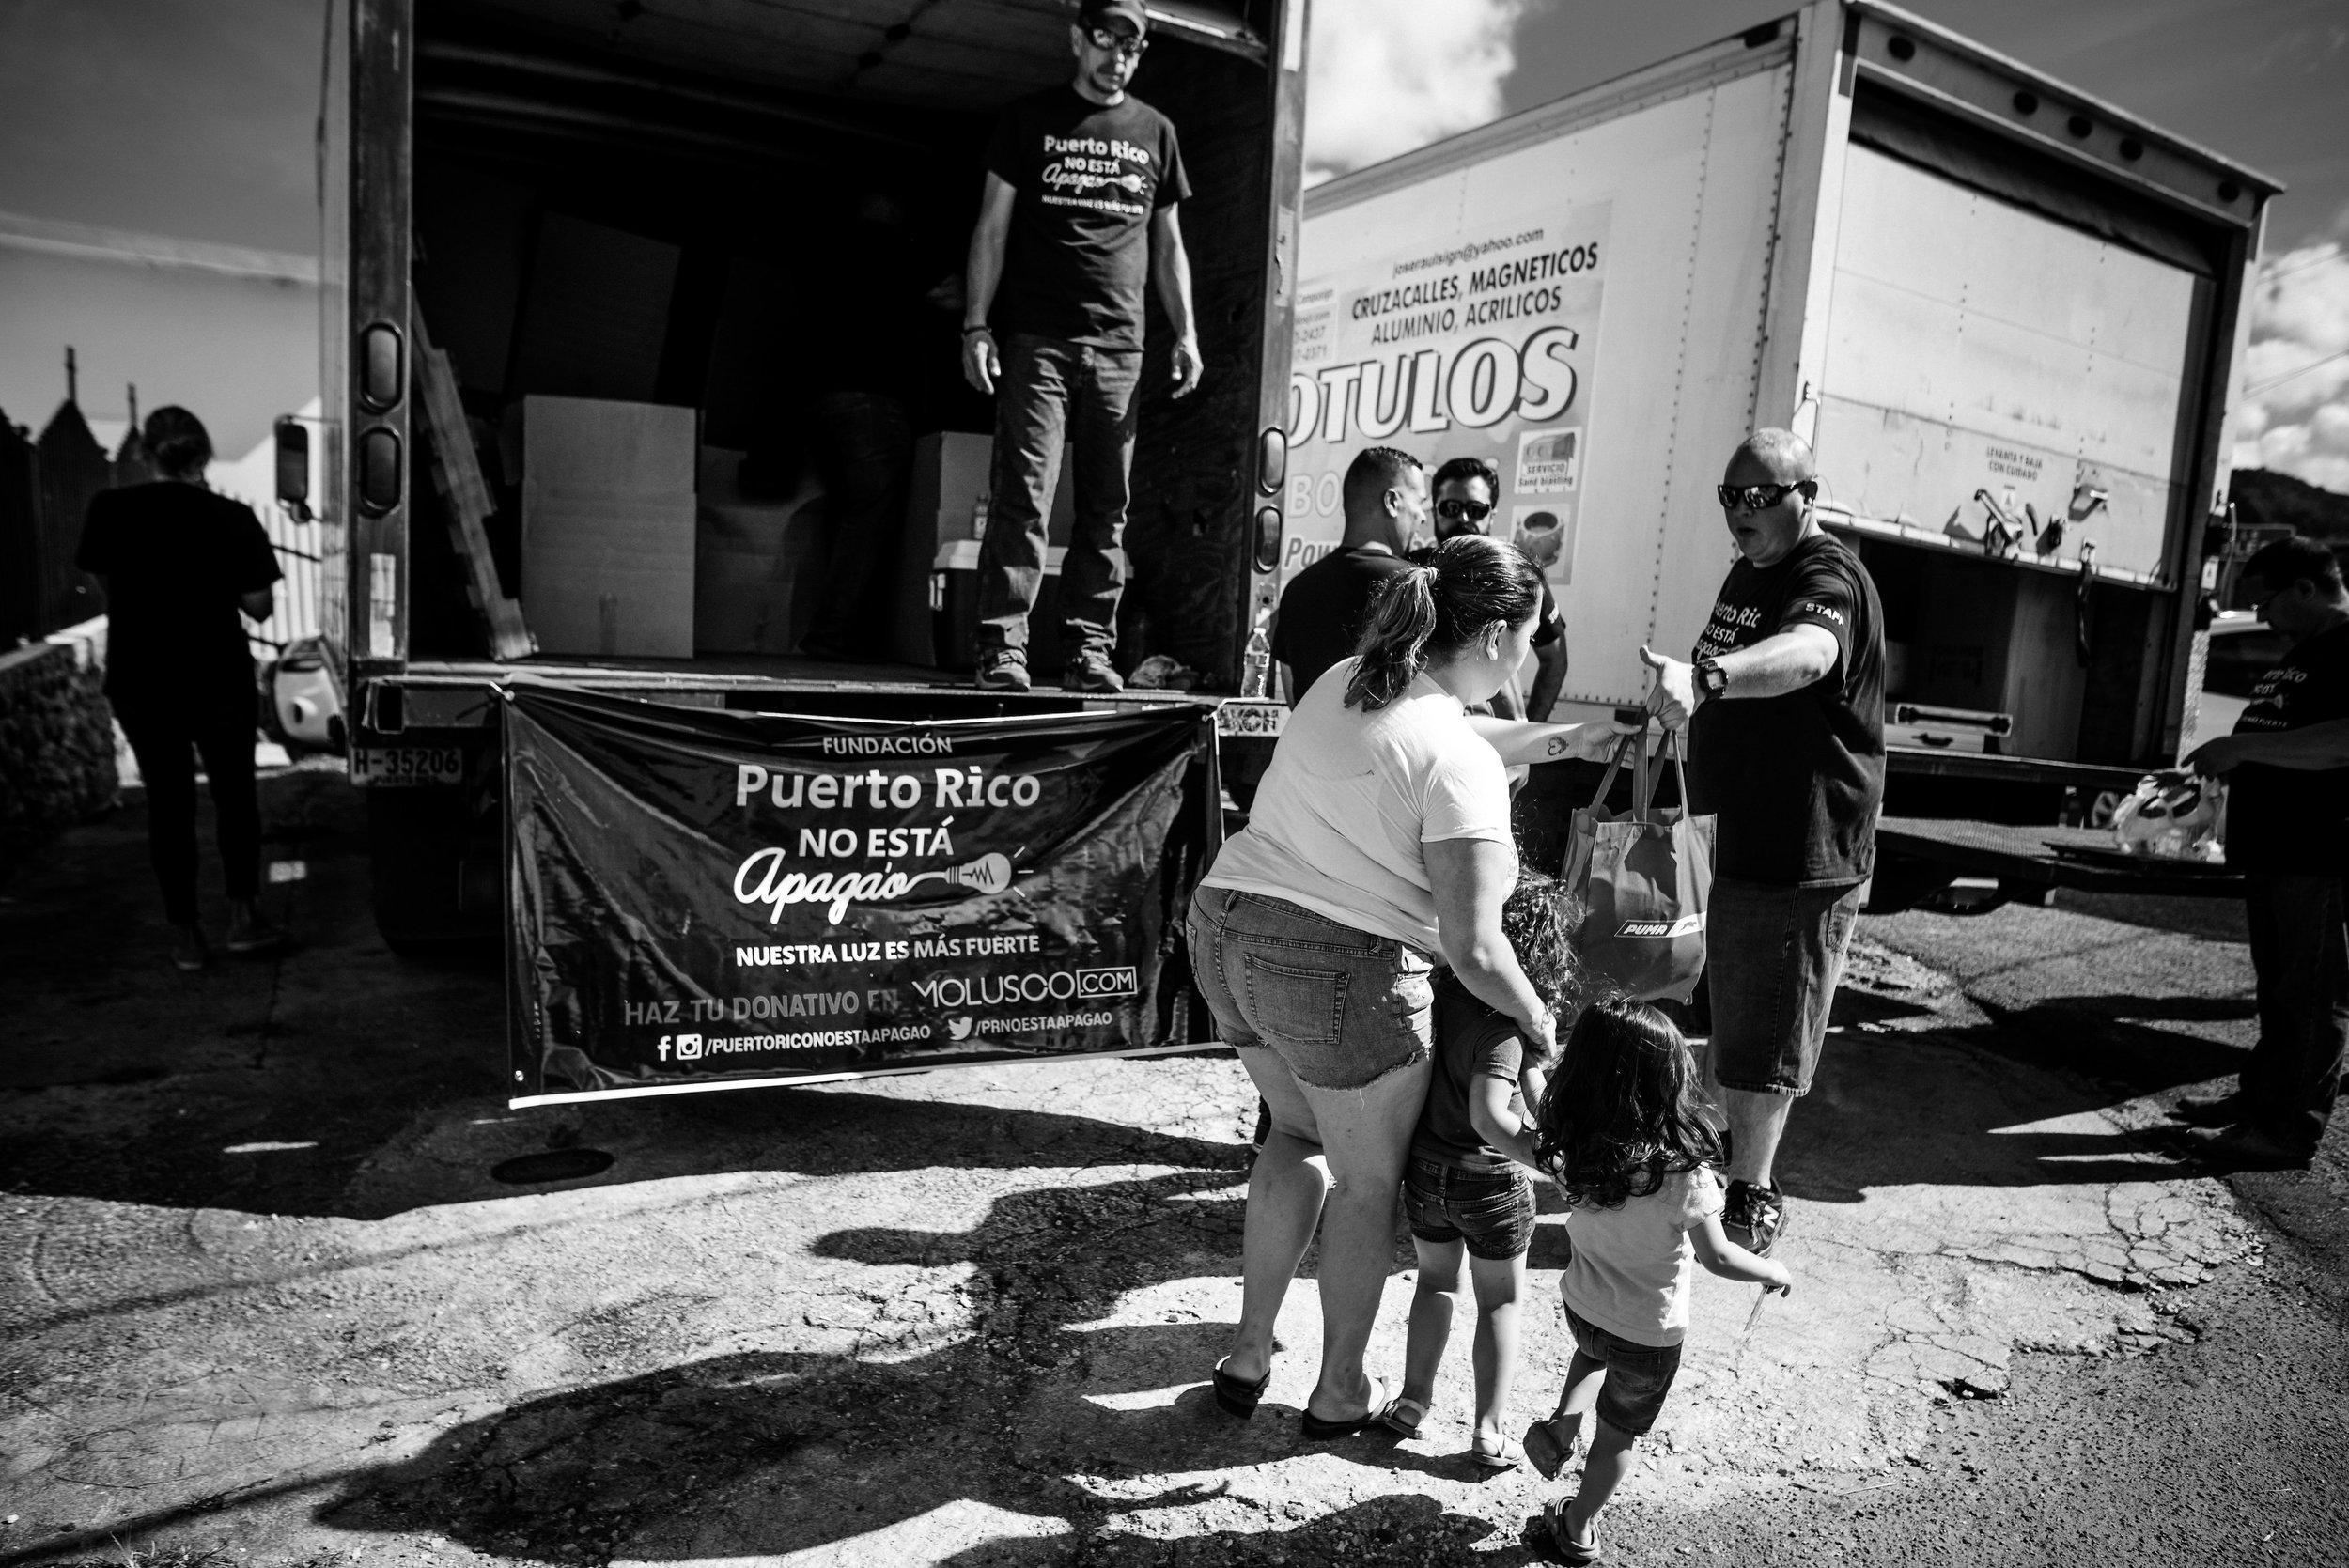 "Photo credit: Aniya Emtage Legnaro  ""Puerto Rico no esta apago"" – Puerto Rico is not shutting down. The campaign was started by Puerto Rican actor and stand up comedian to raise money for supplies such as food and books for those in need in Puerto Rico."